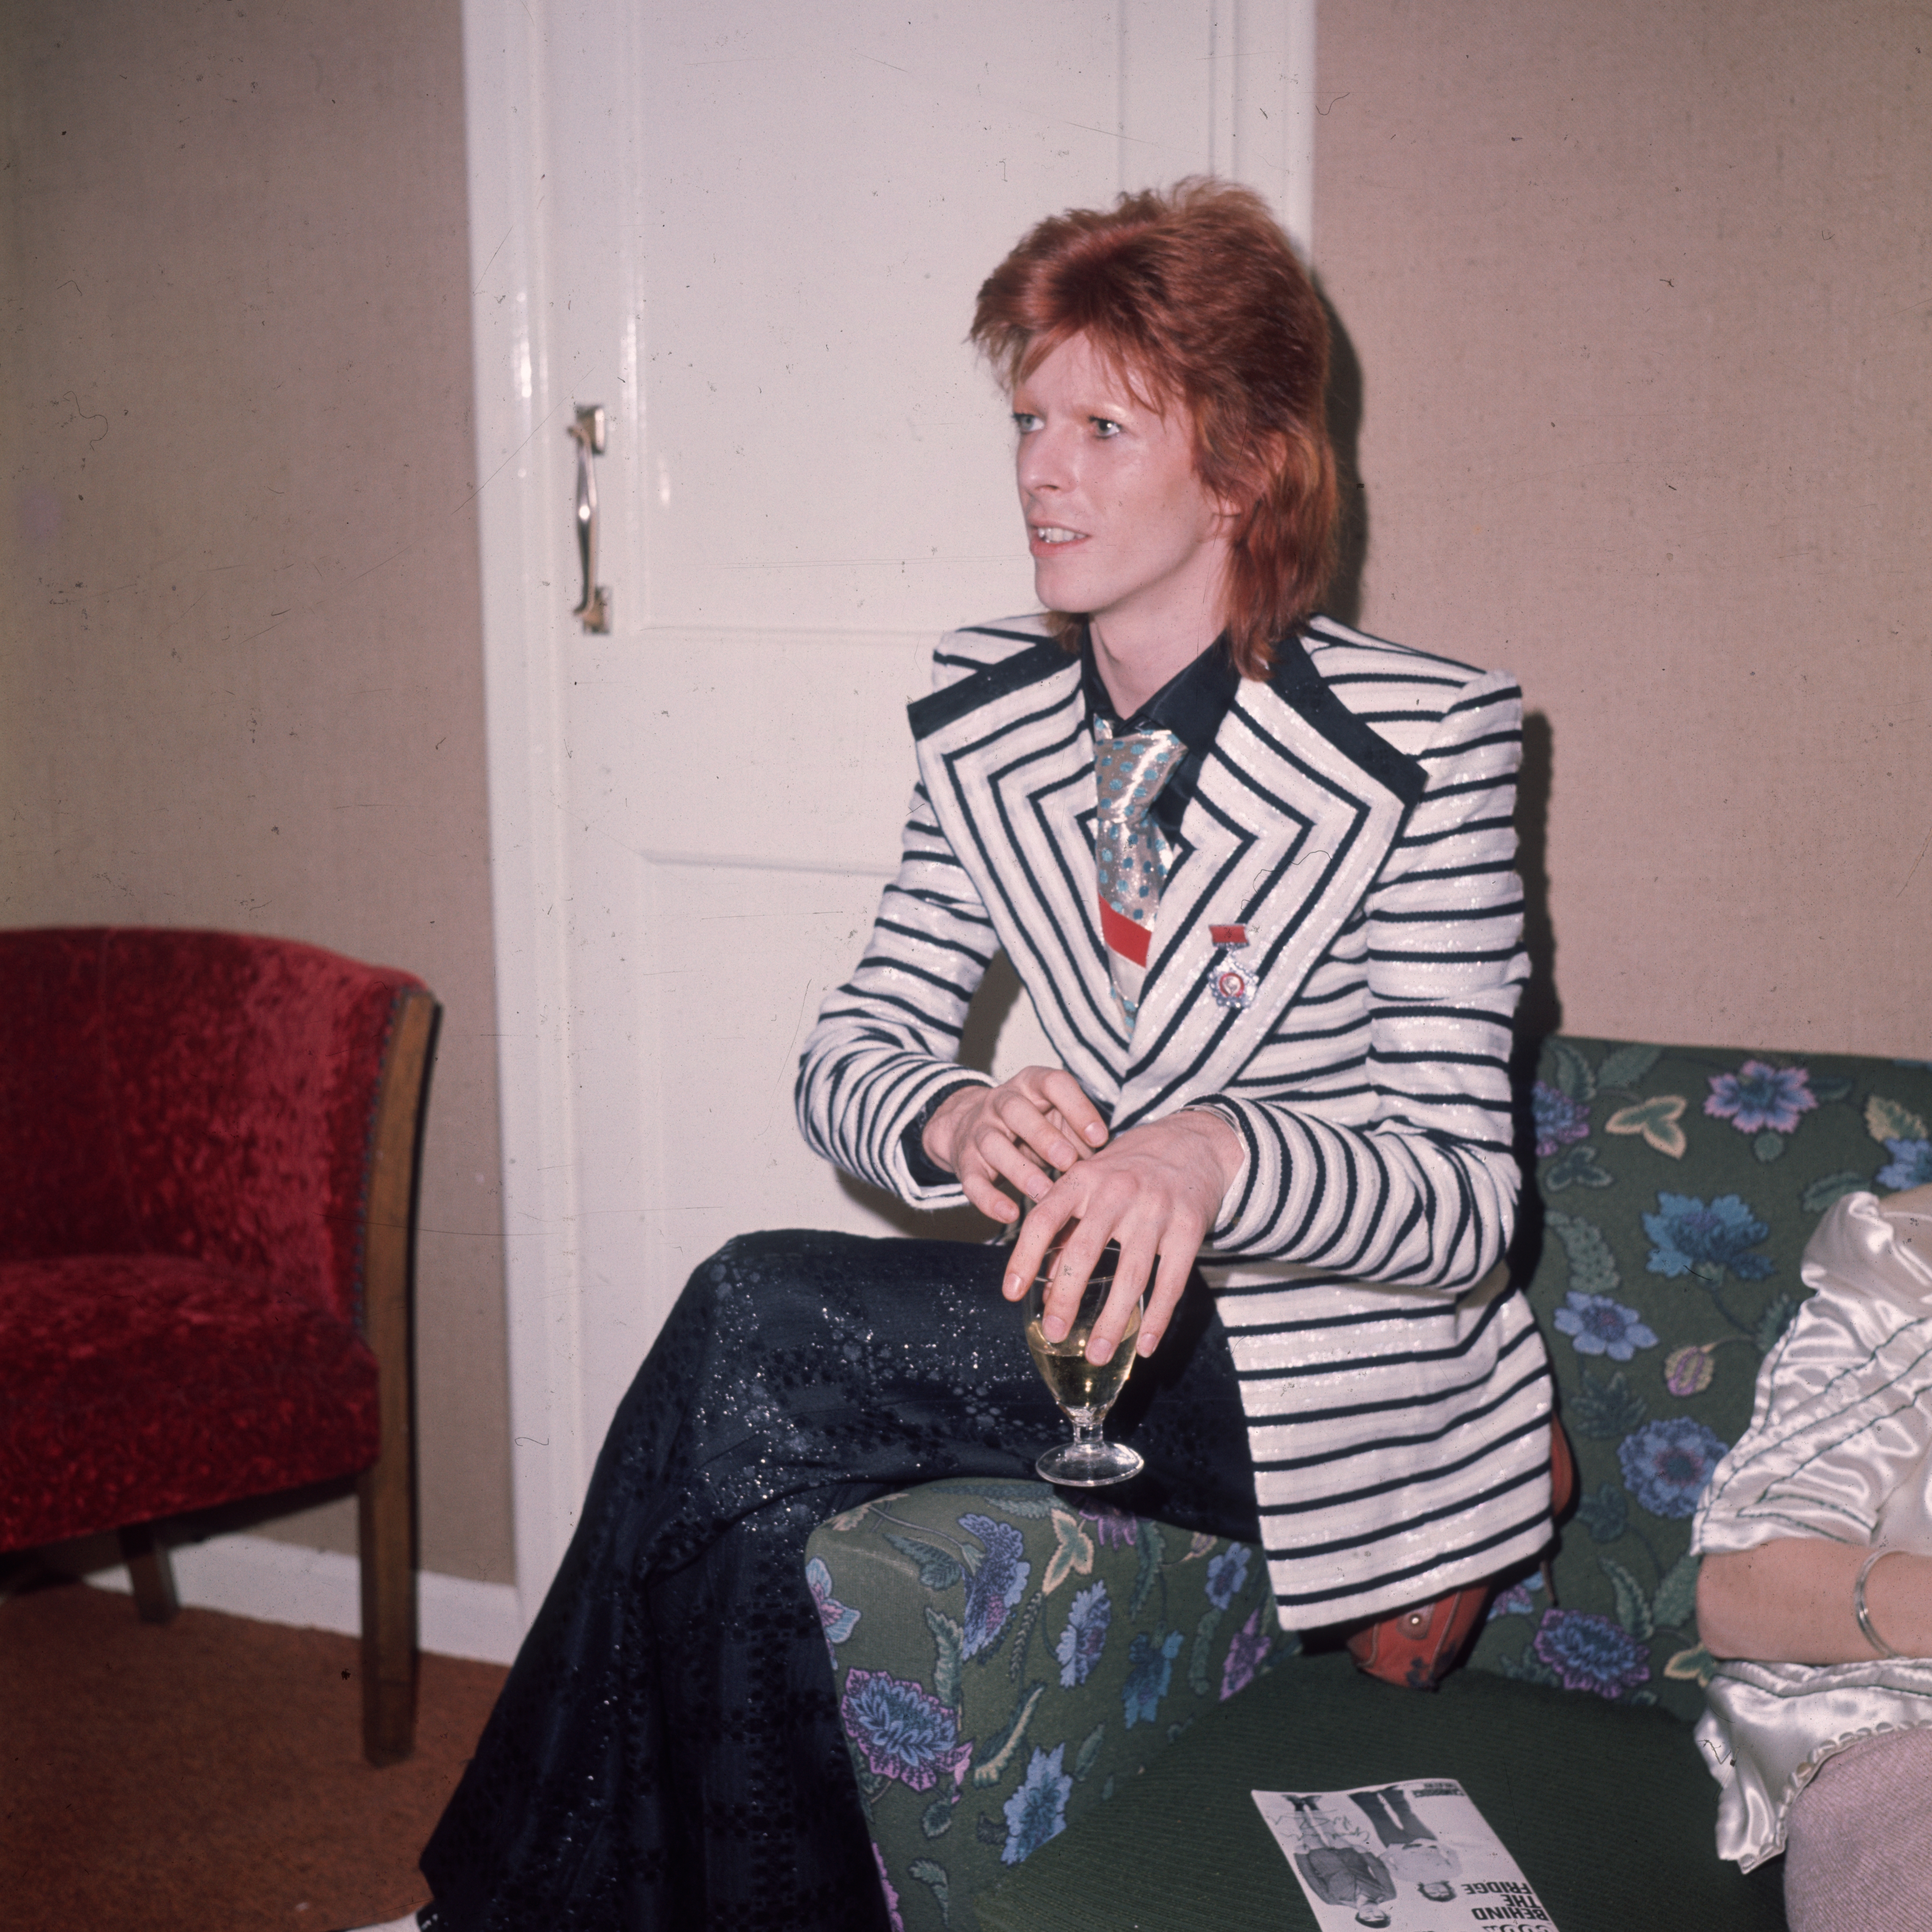 In a black and white horizontally striped jacket with wide lapels glam rock star David Bowie. Source: Getty